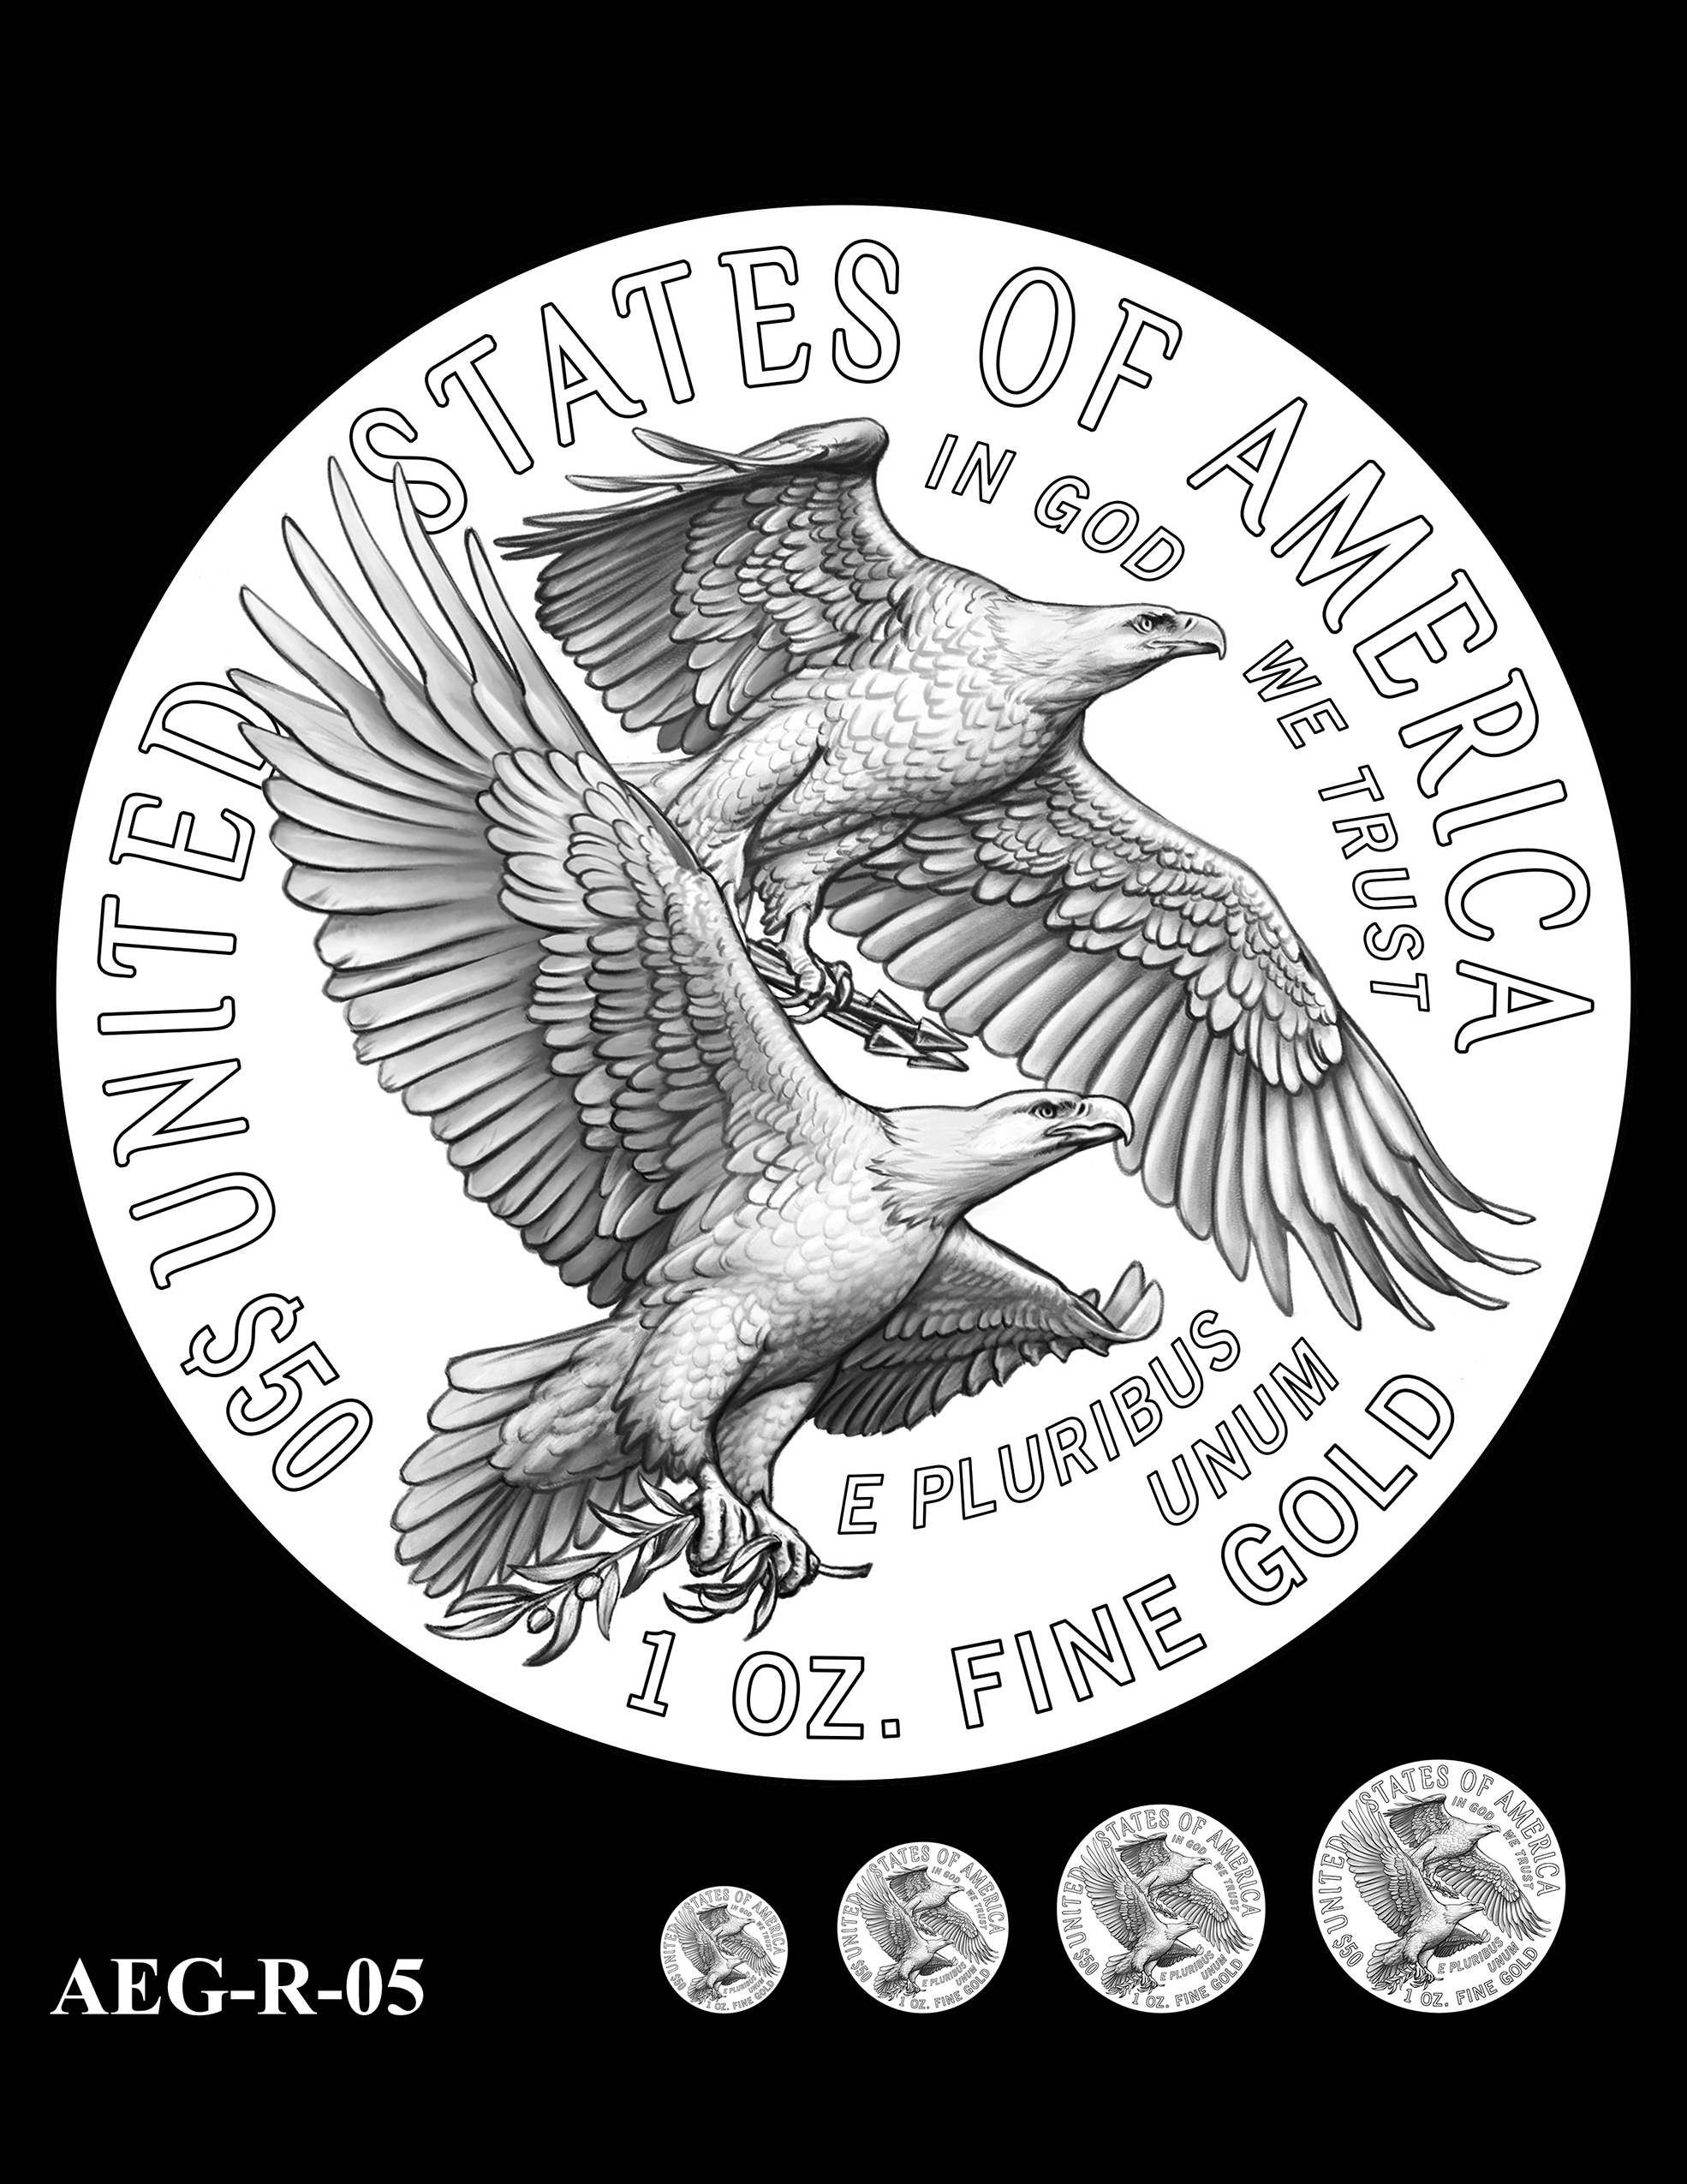 AEG-R-05 -- American Eagle Proof and Bullion Gold Coin - Reverse